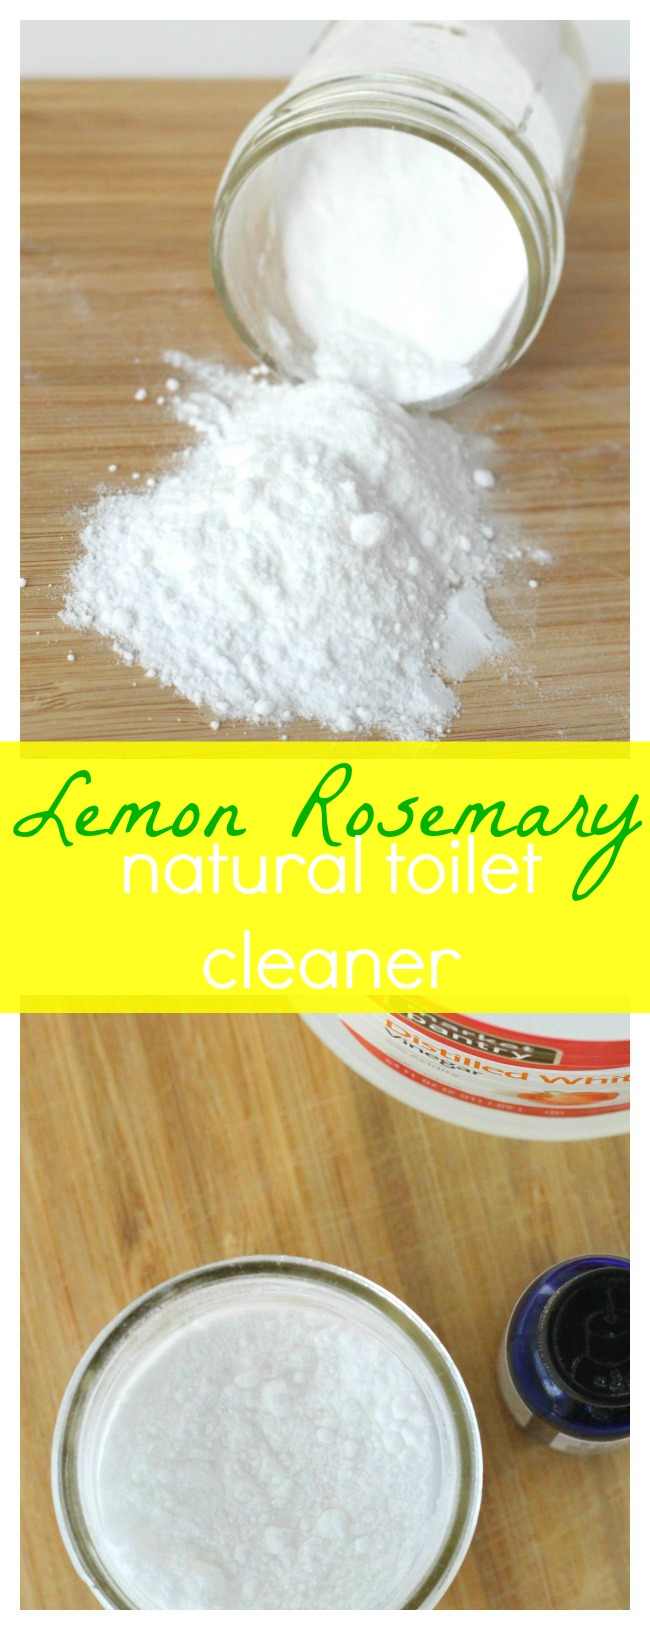 Natural Toilet Cleaner 6 Bathroom Toilet Cleaning Tips